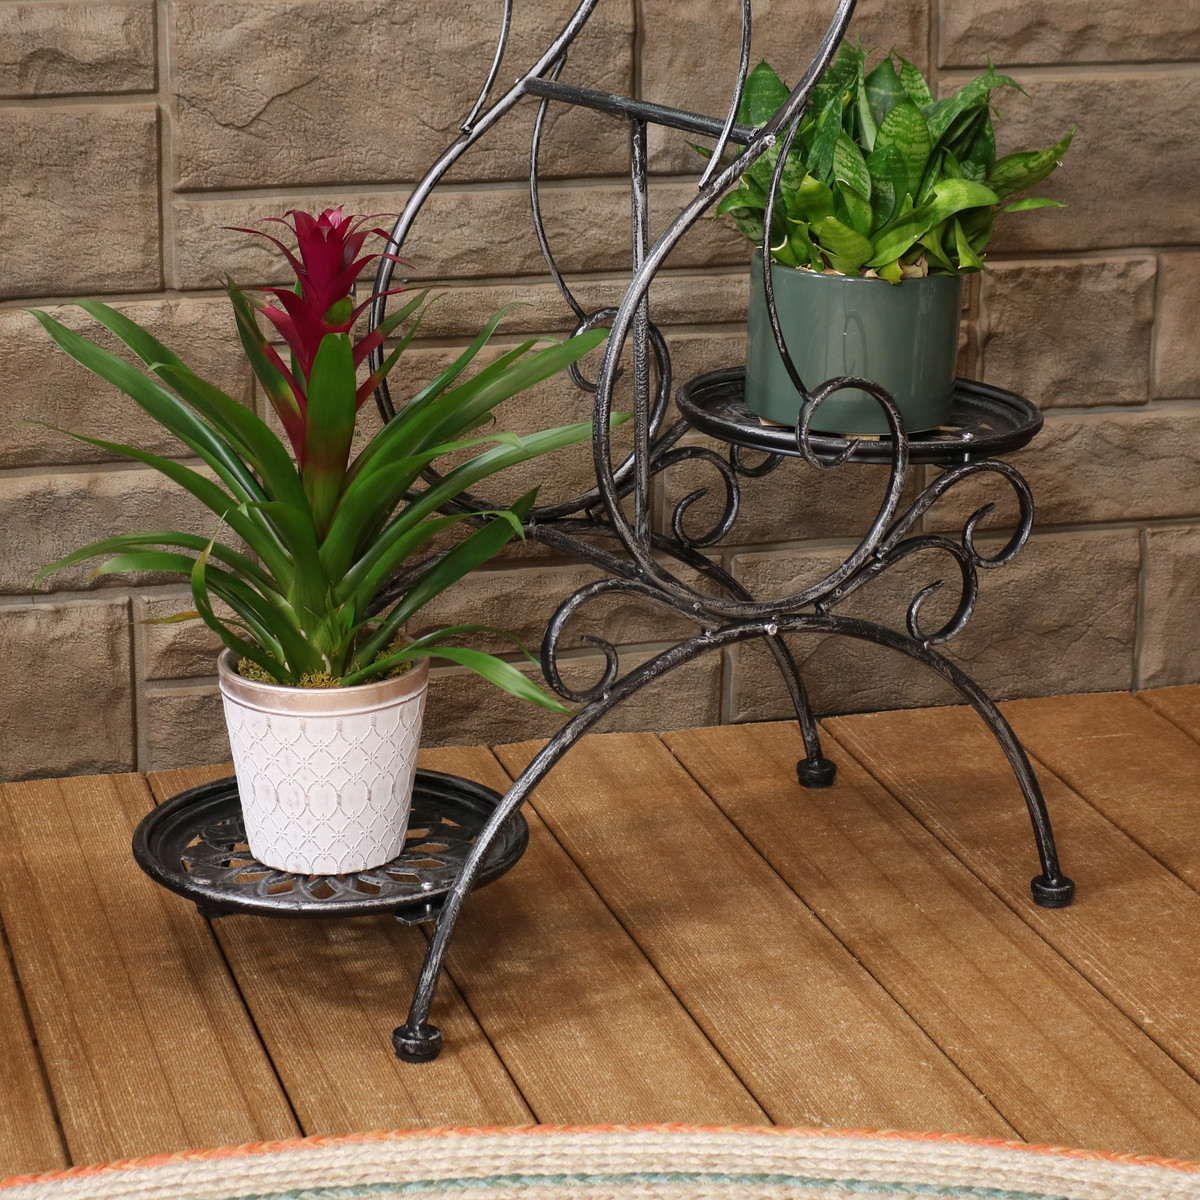 Sunnydaze 3 Tier Victorian Indoor Outdoor Plant And Flower Stand 31 Inch Tall